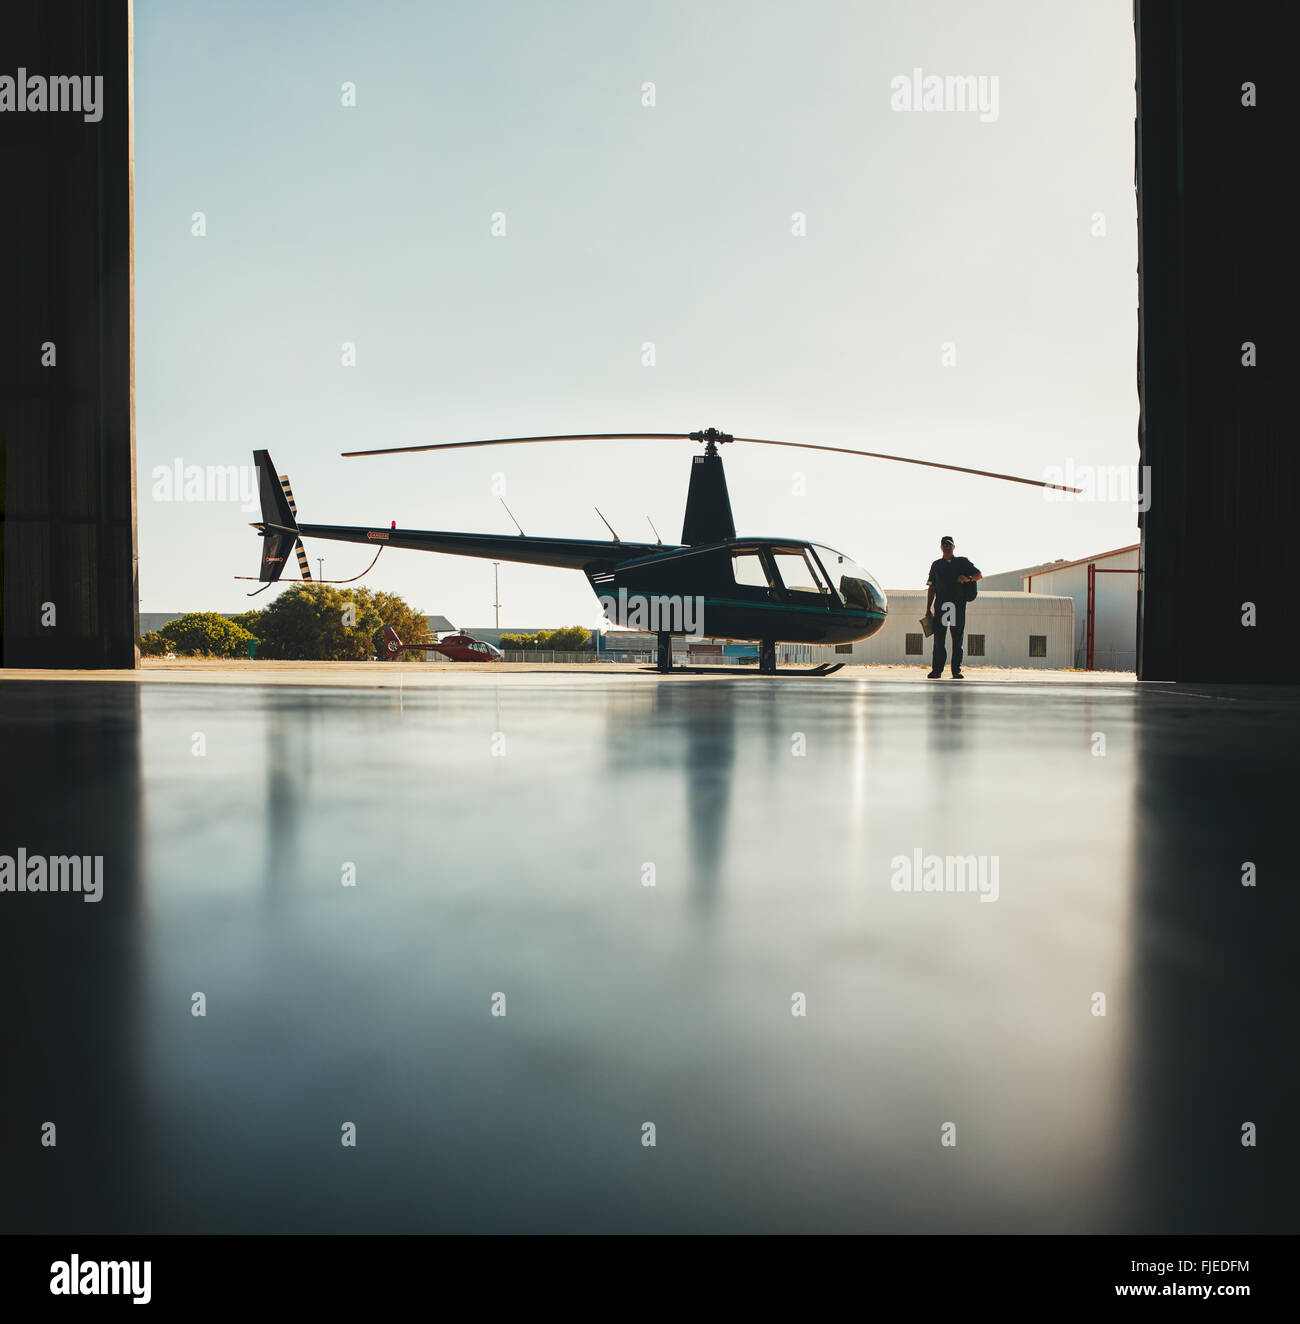 Silhouette of helicopter with a pilot walking in the airplane hangar after the flight. - Stock Image